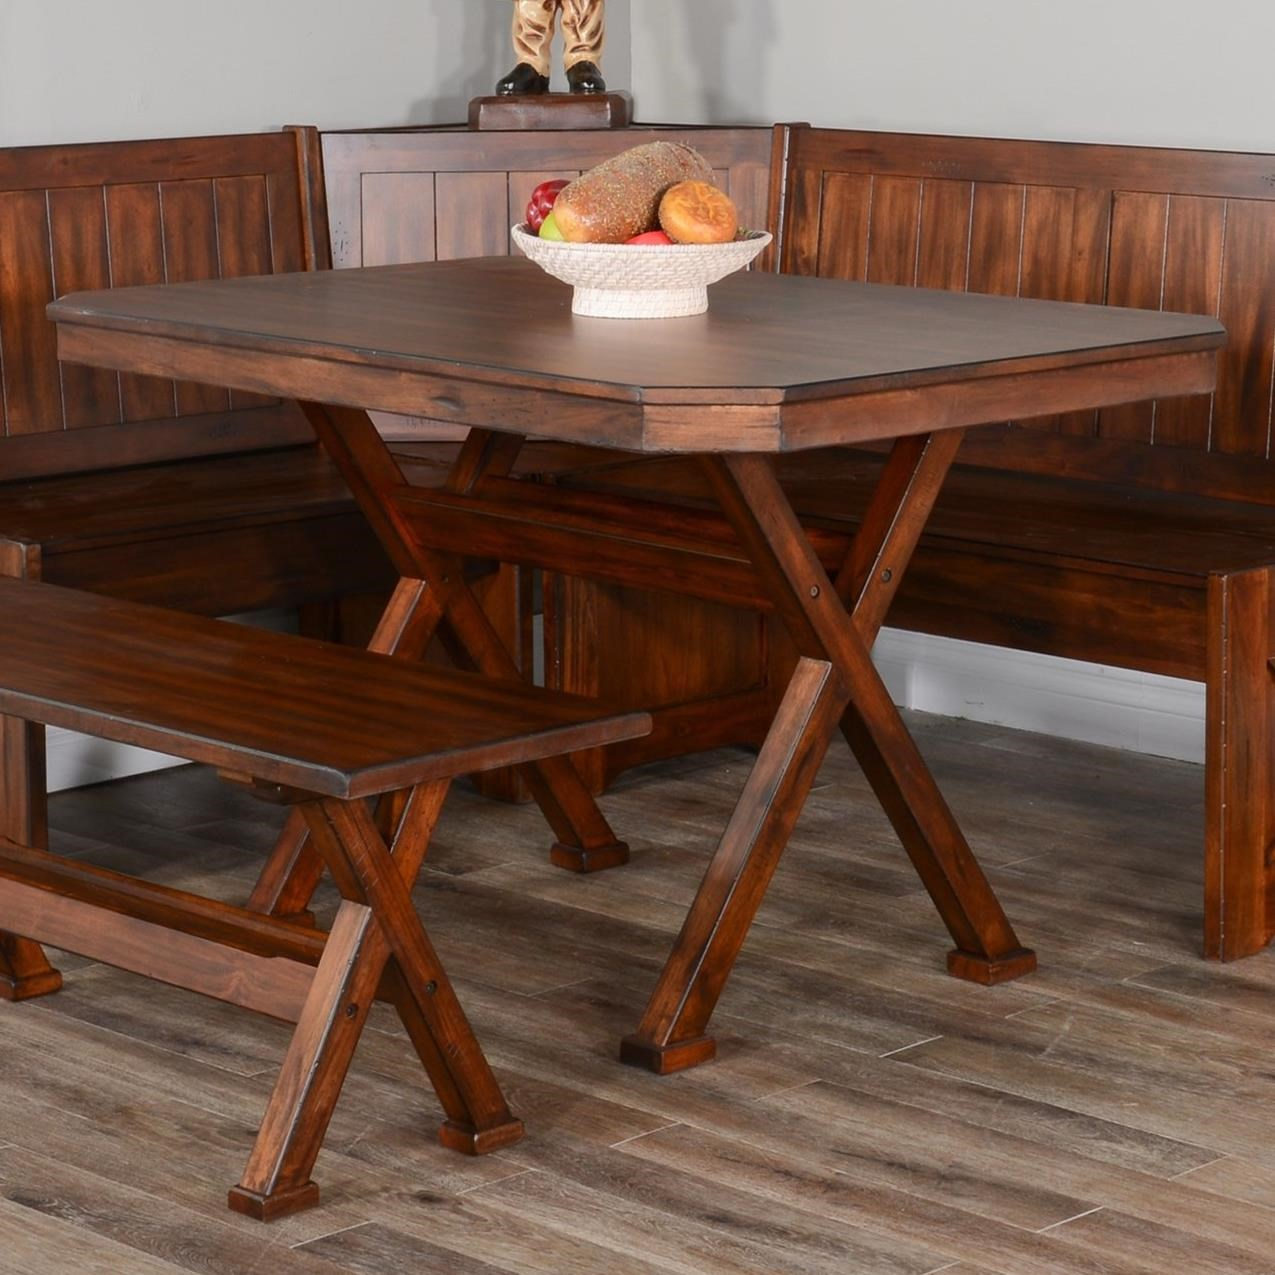 Sunny Designs Tuscany Table w/ X-Base | Conlin's Furniture ...